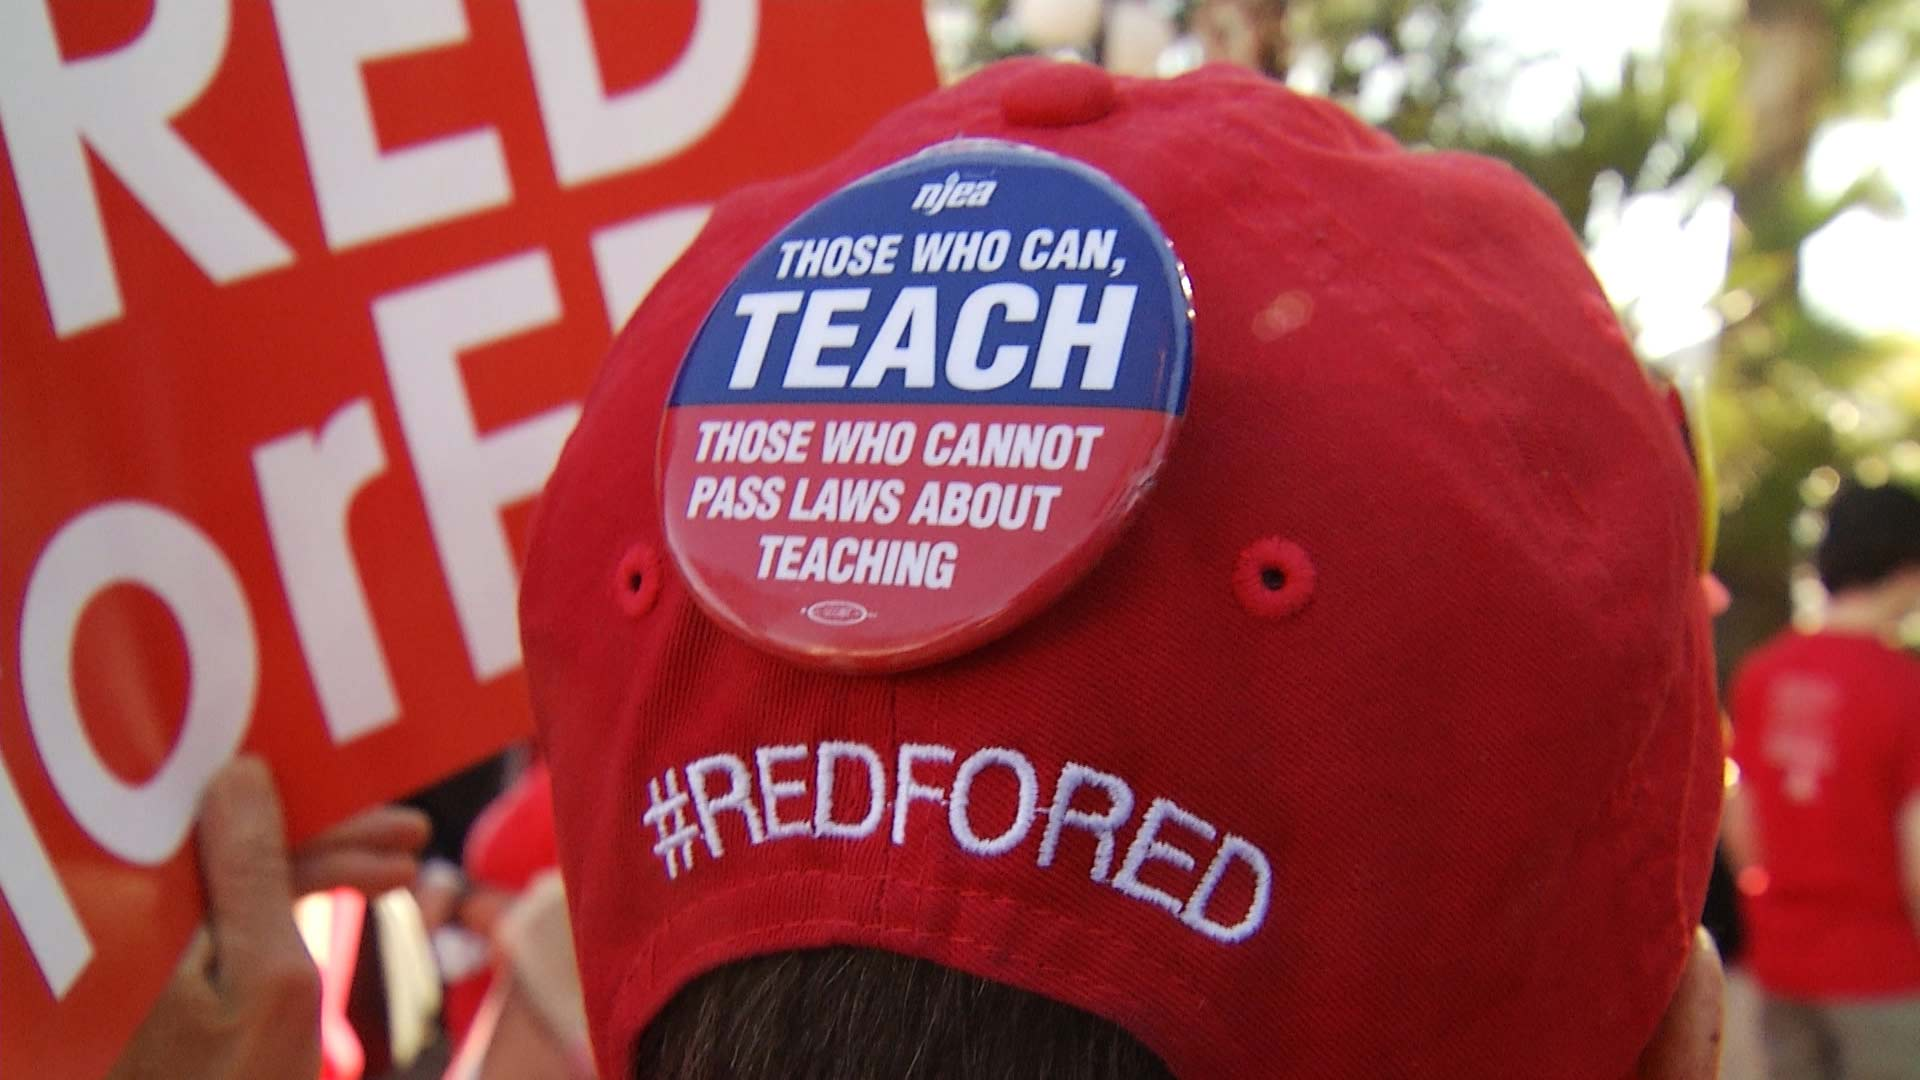 Tucson #RedForEd demonstrators in April, 2019.